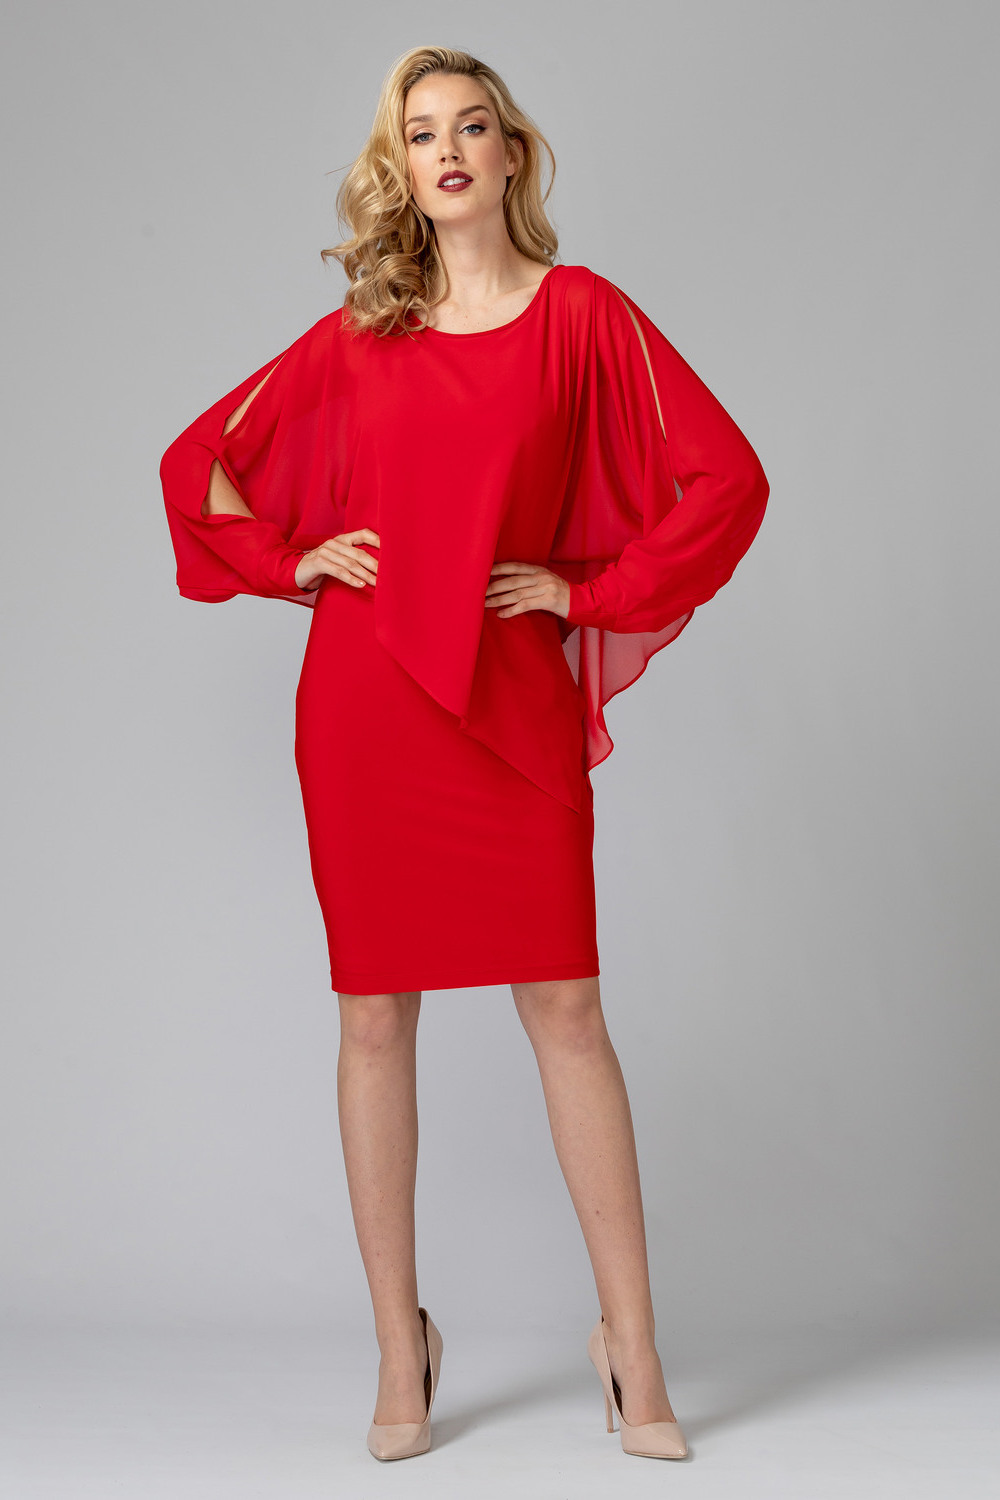 Joseph Ribkoff Robes Rouge A Levres 173 Style 193205